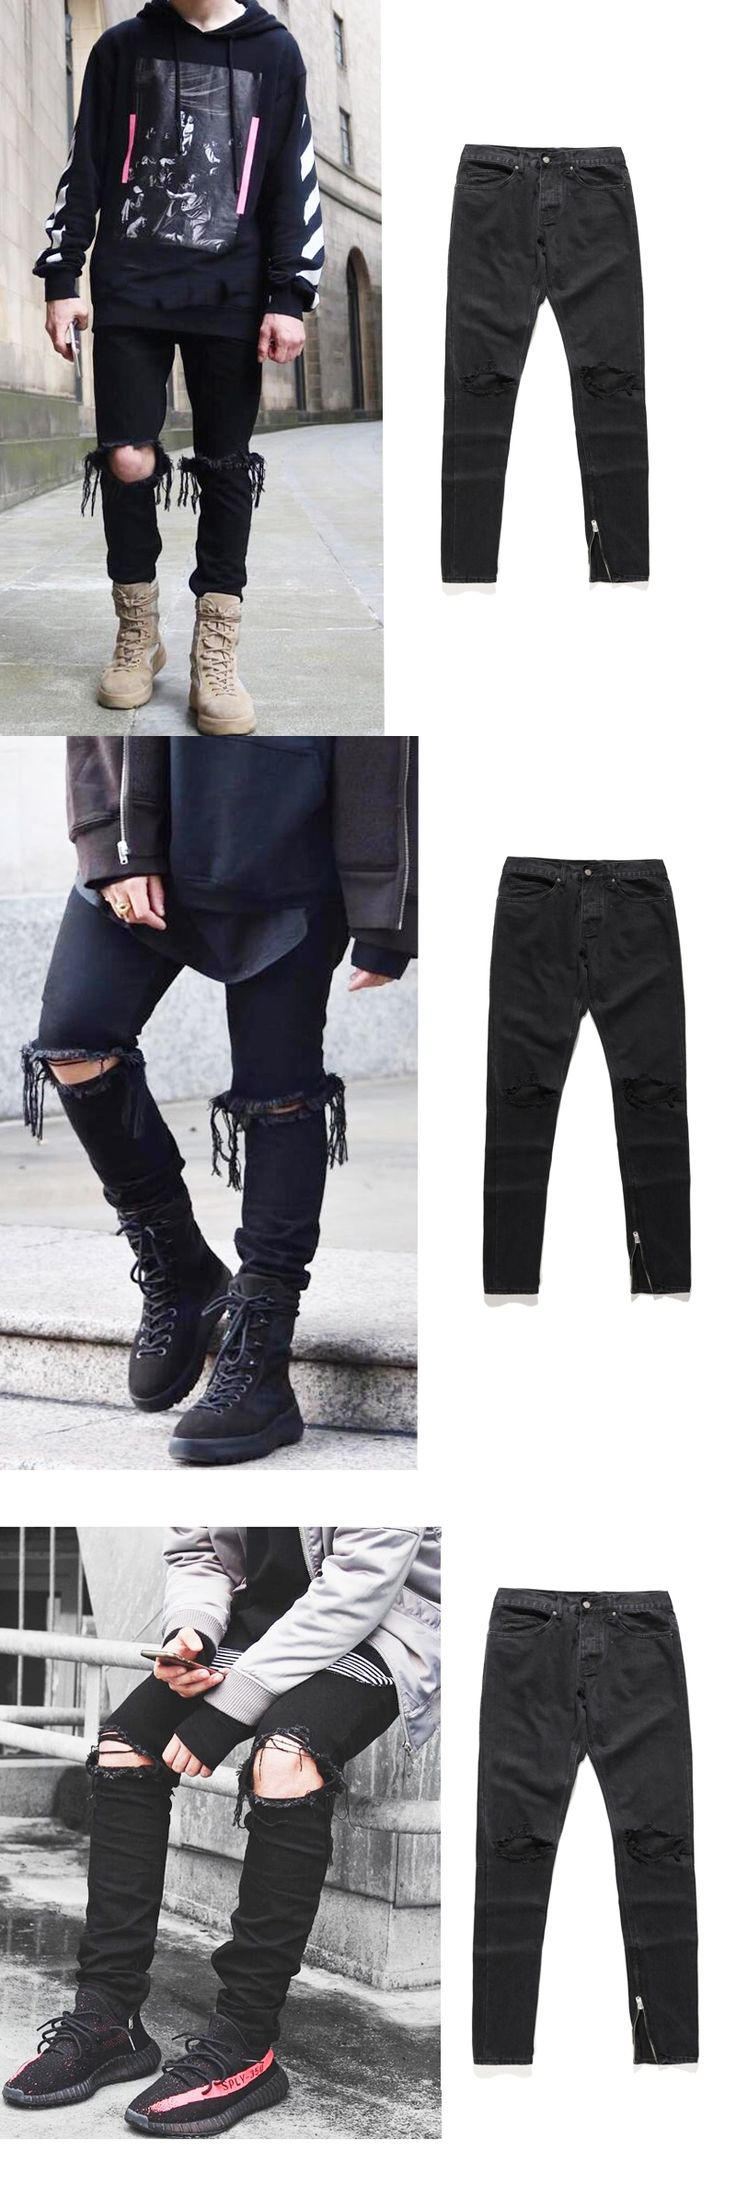 high quality 2017 fashion mens jeans hole Full Length pants ankle zipper cool black jogger damage hip hop rock star Casual jeans